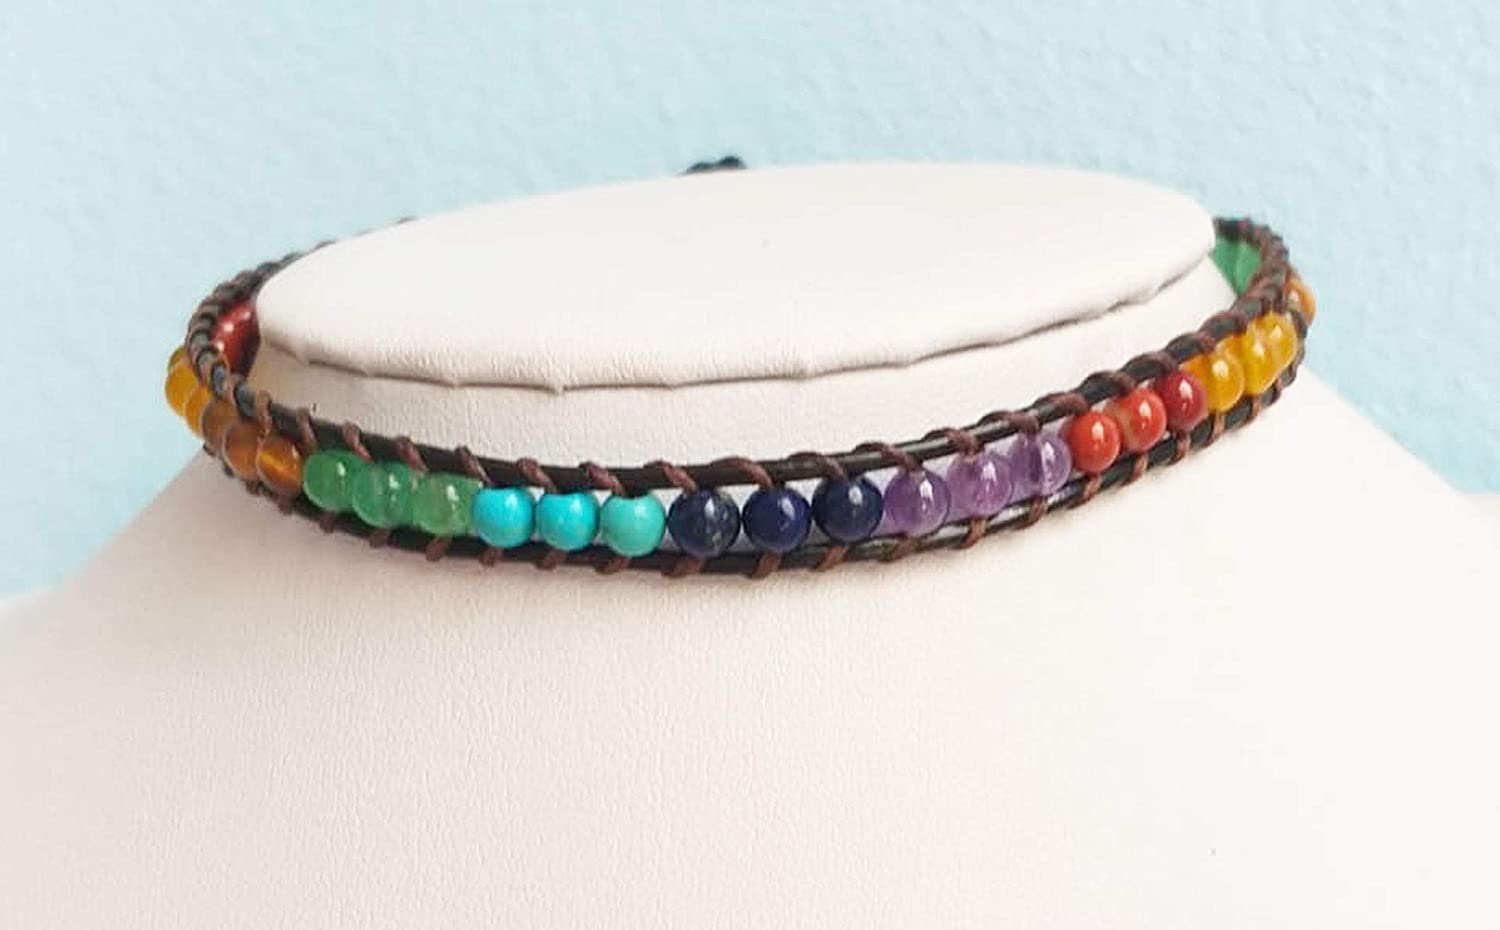 Chakra stone Bombing new work Outlet sale feature leather choker necklaces cho sweet mix